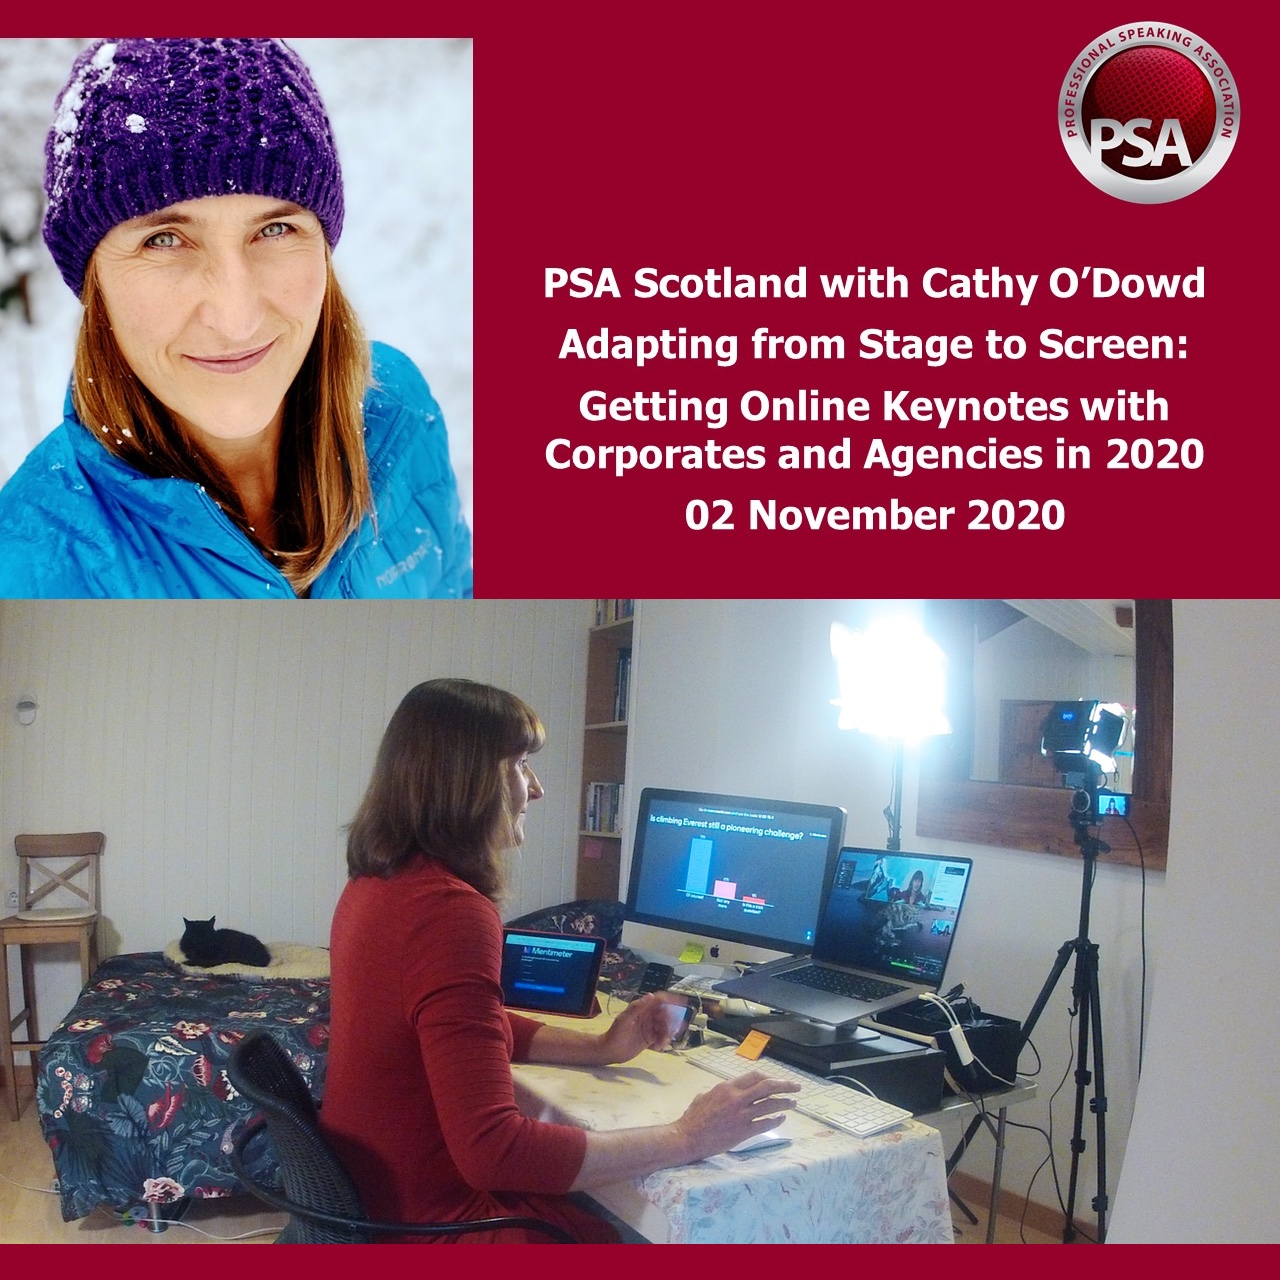 PSA Scotland 2 November 2020: Adapting from Stage to Screen